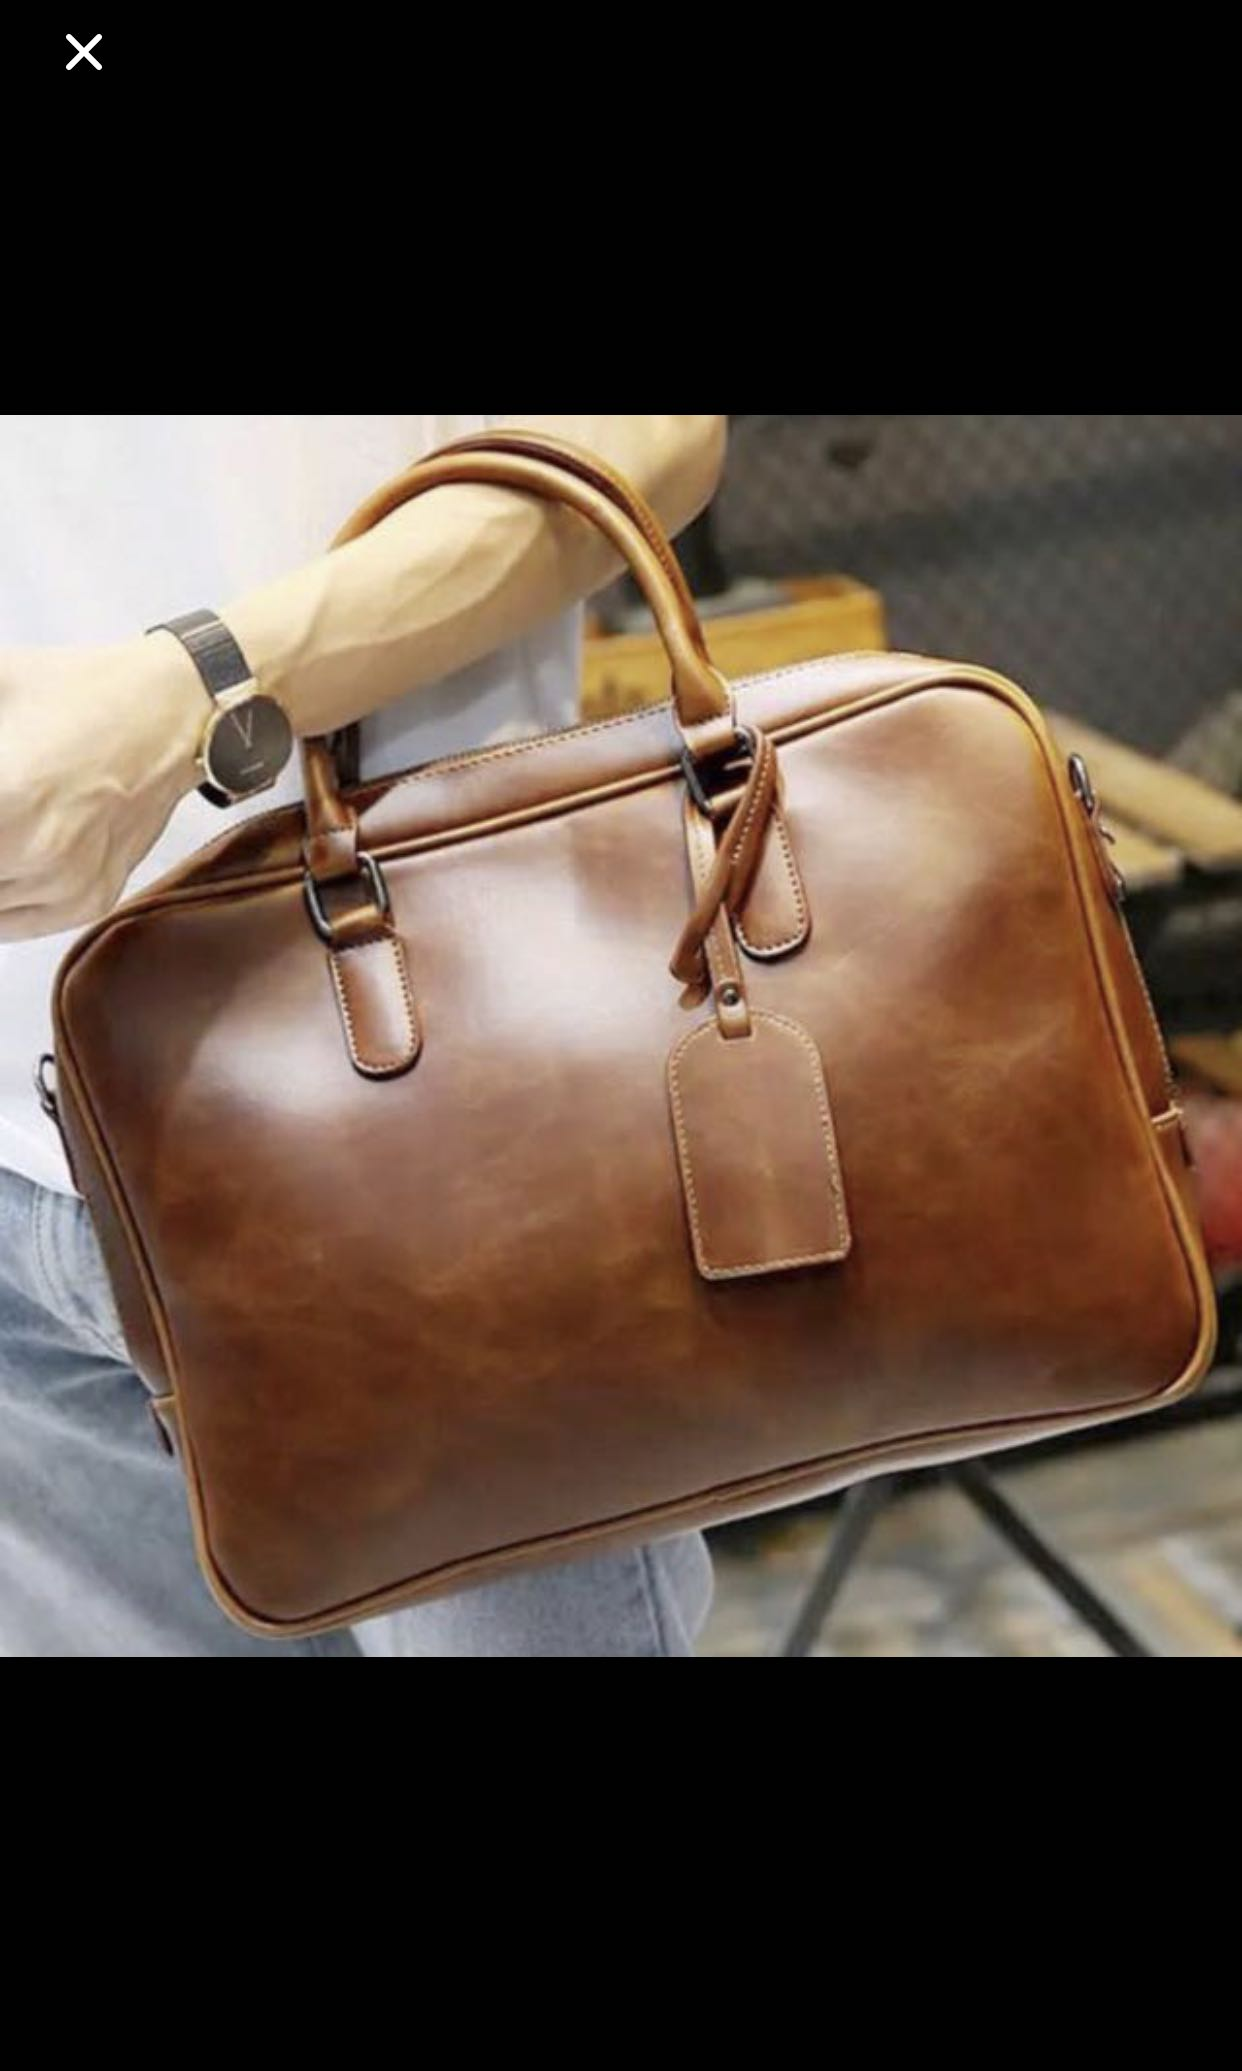 c11266c5c Homme Brown Faux Leather Laptop bag 15.6 inch - iPad Pro bag - Brown  document briefcase - Mens Formal bag, Men's Fashion, Bags & Wallets, Sling  Bags on ...